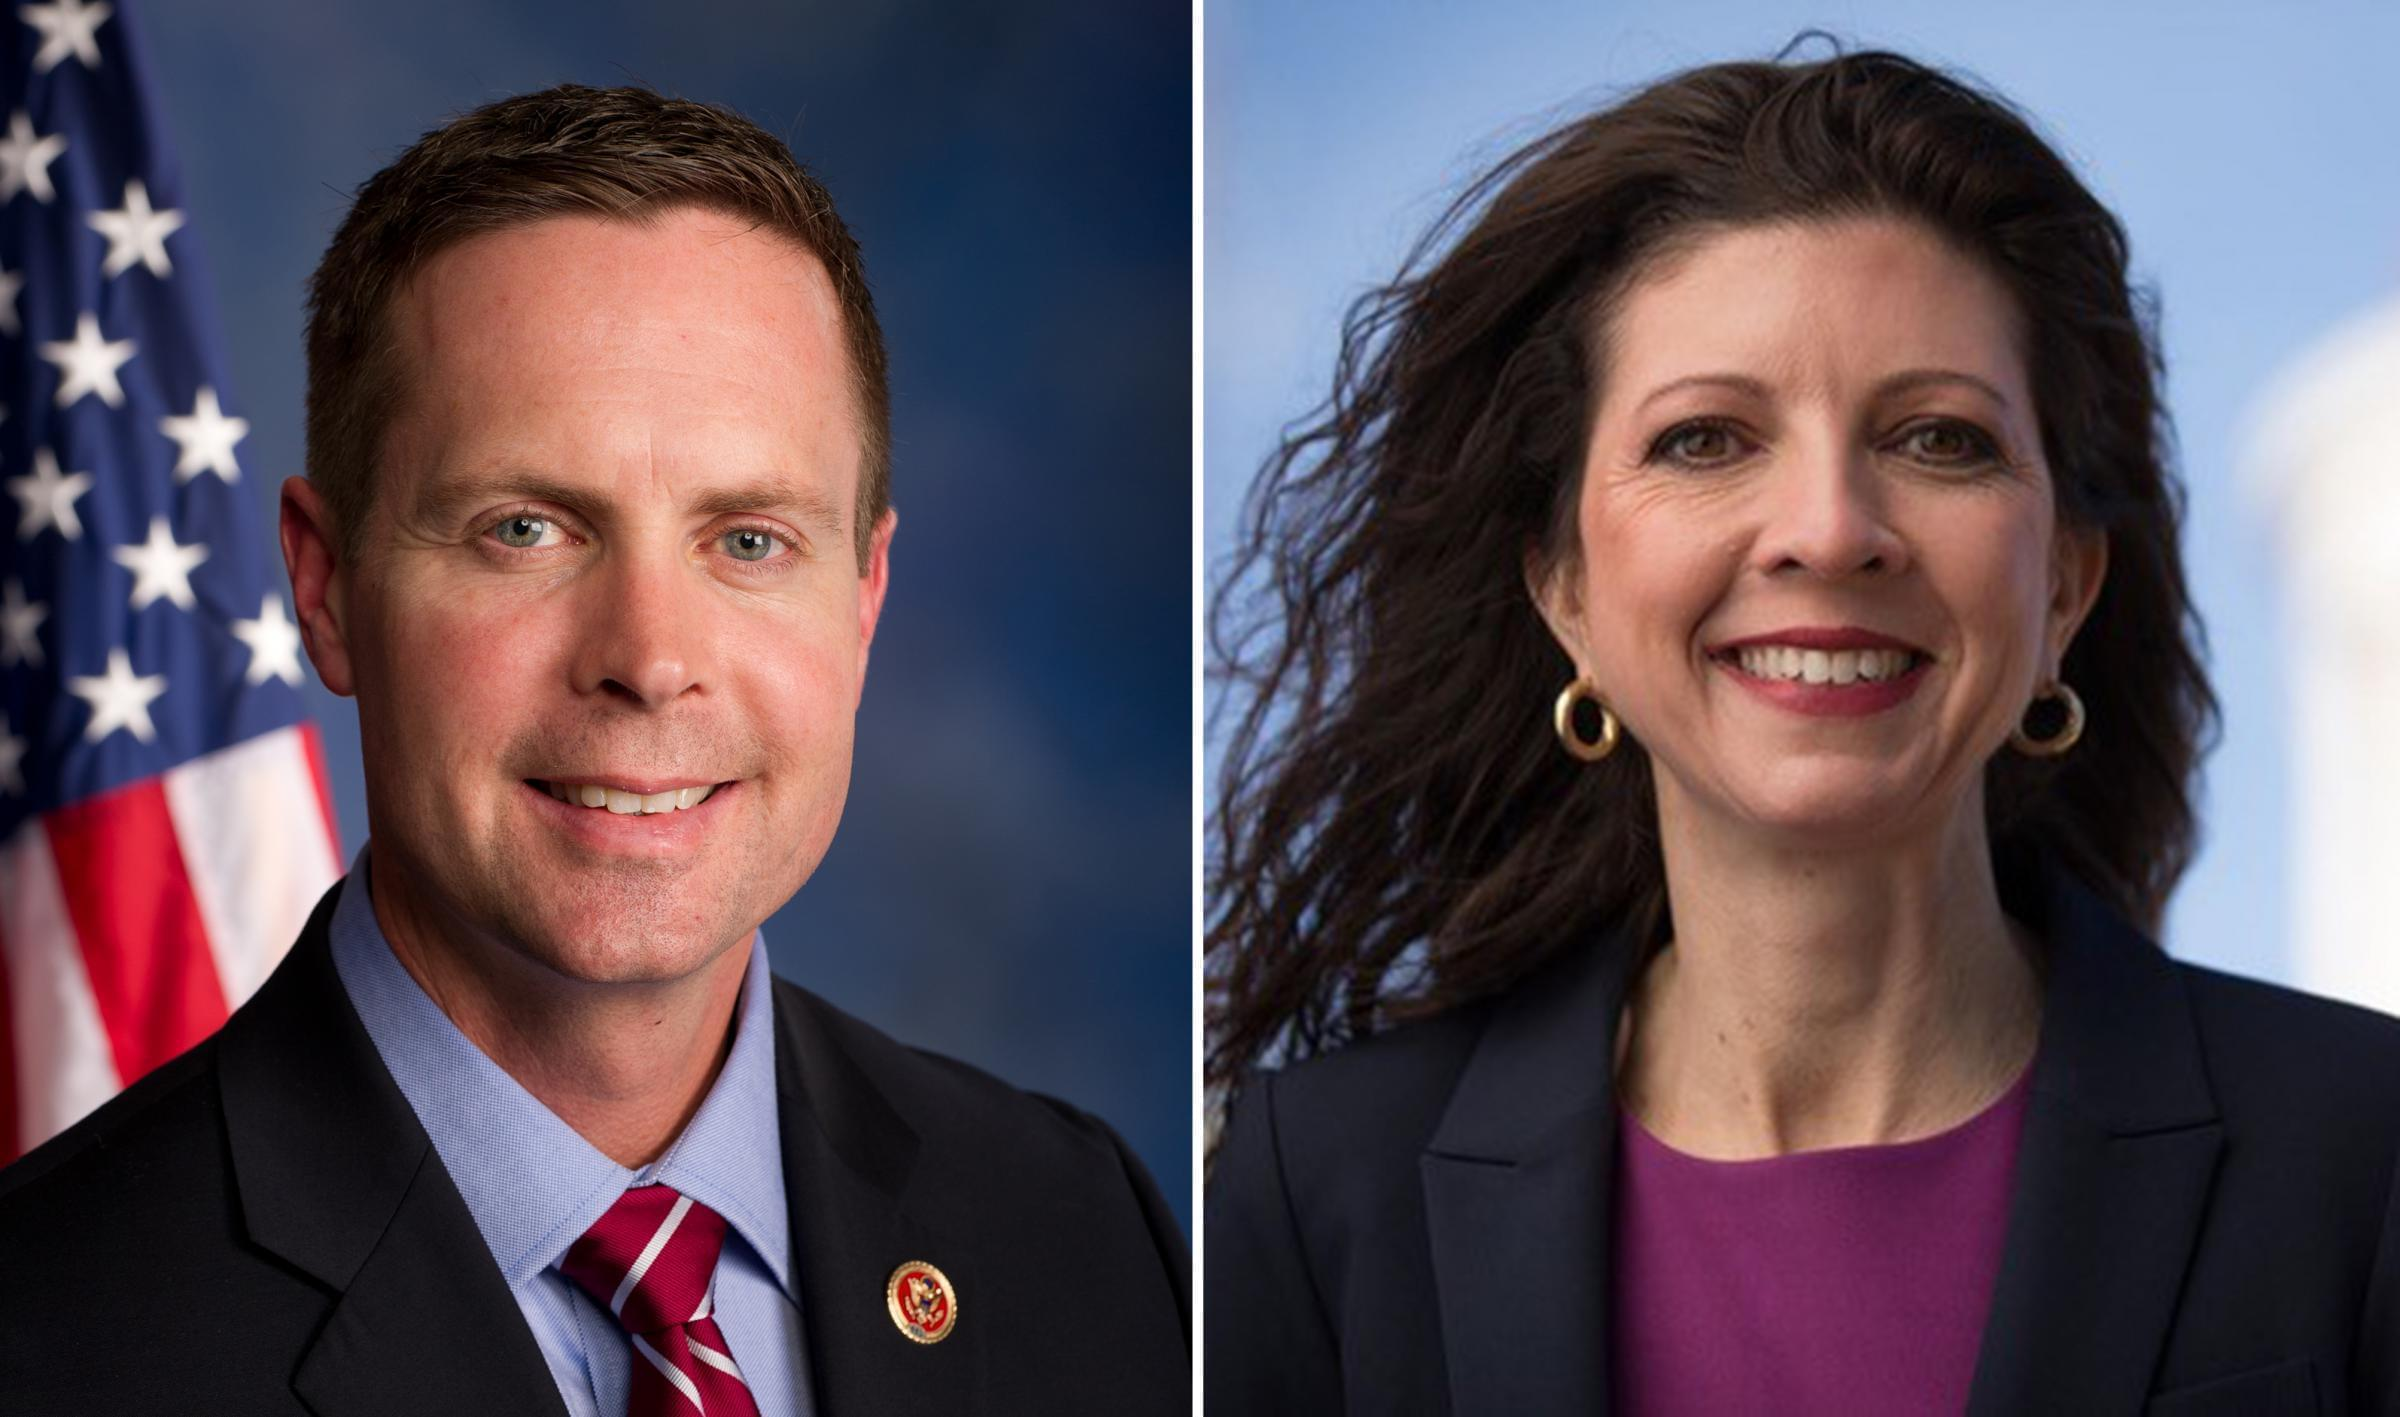 U.S. Rep. Rodney Davis will take on Democratic challenger Betsy Dirksen Londrigan in November in the 13th Congressional District.